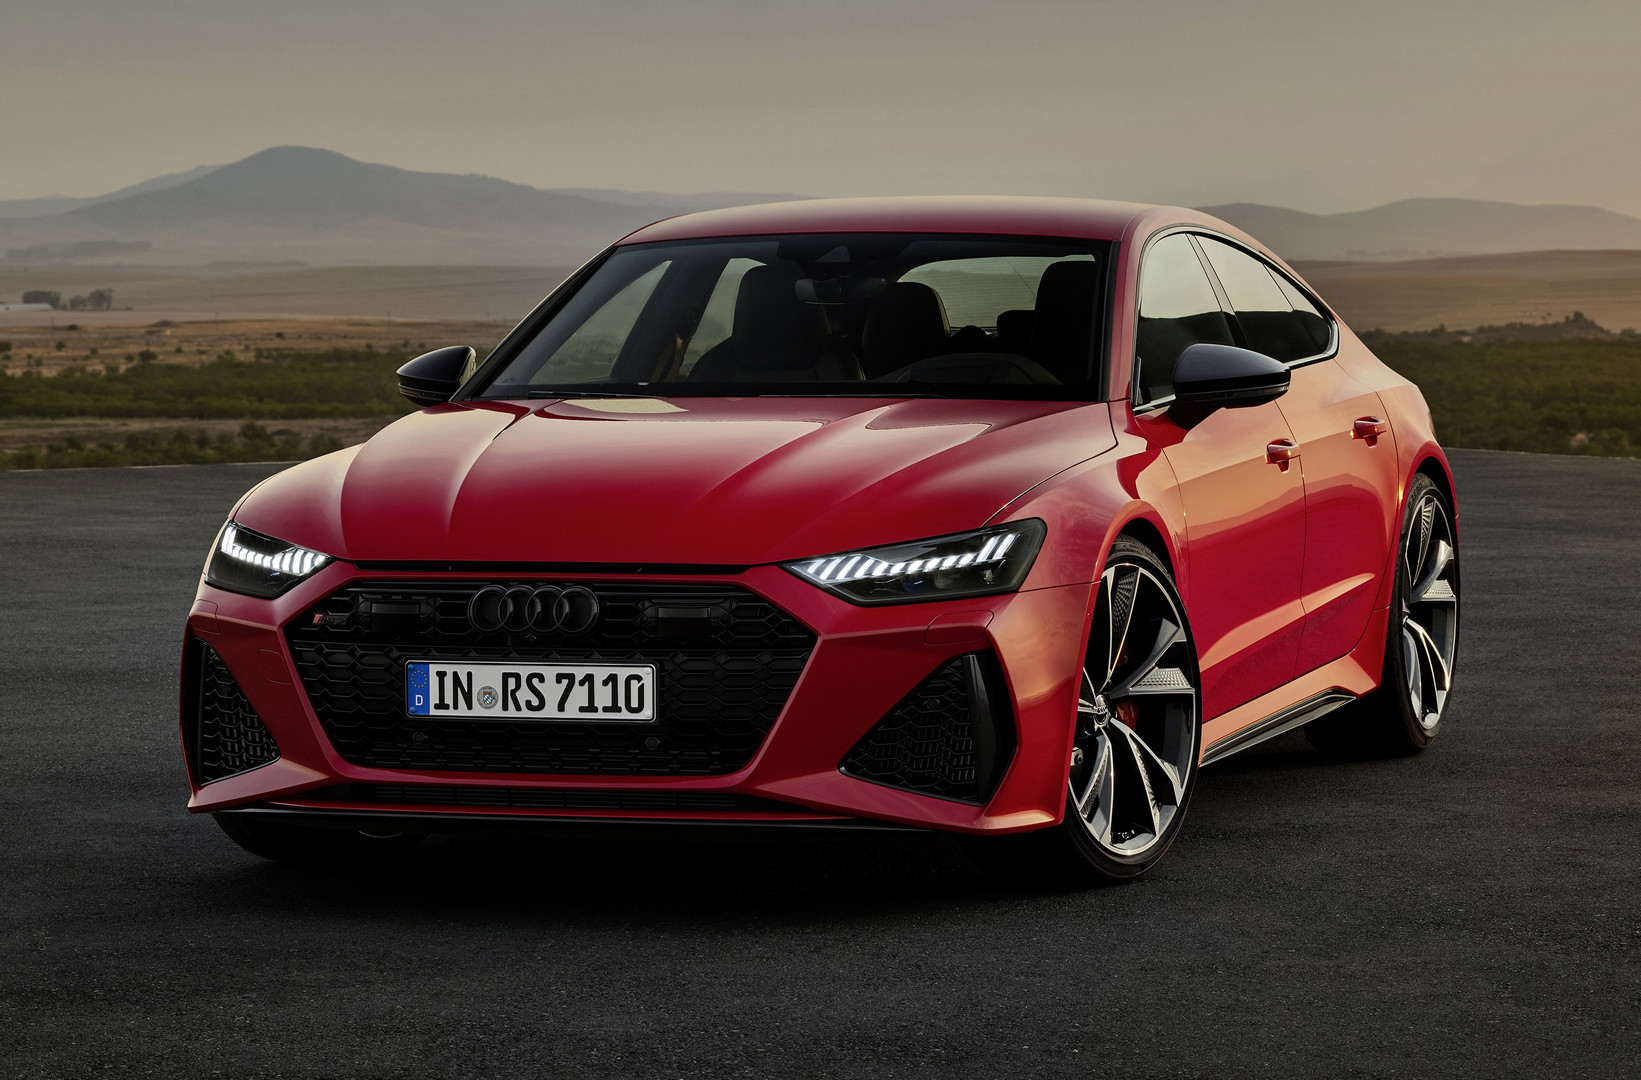 2020 Audi Rs7 Sportback Specs Supercars For Sale